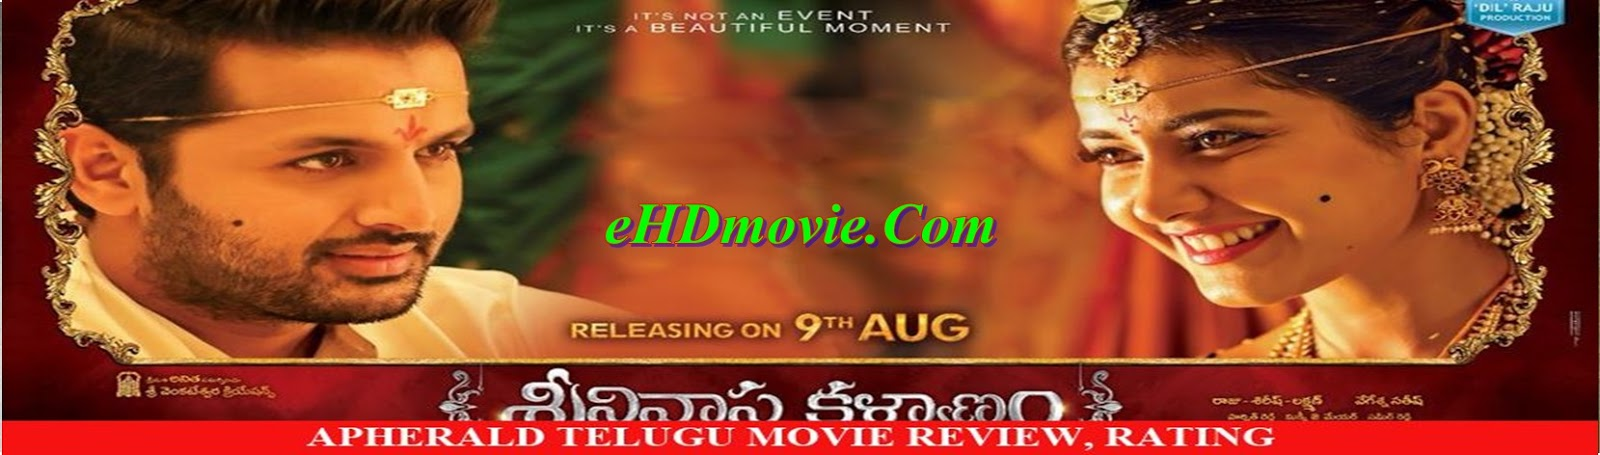 Srinivasa Kalyanam 2018 Full Movie Telegu 720p - HEVC - 480p ORG HDRip 400MB - 700MB - 1GB ESubs Free Download